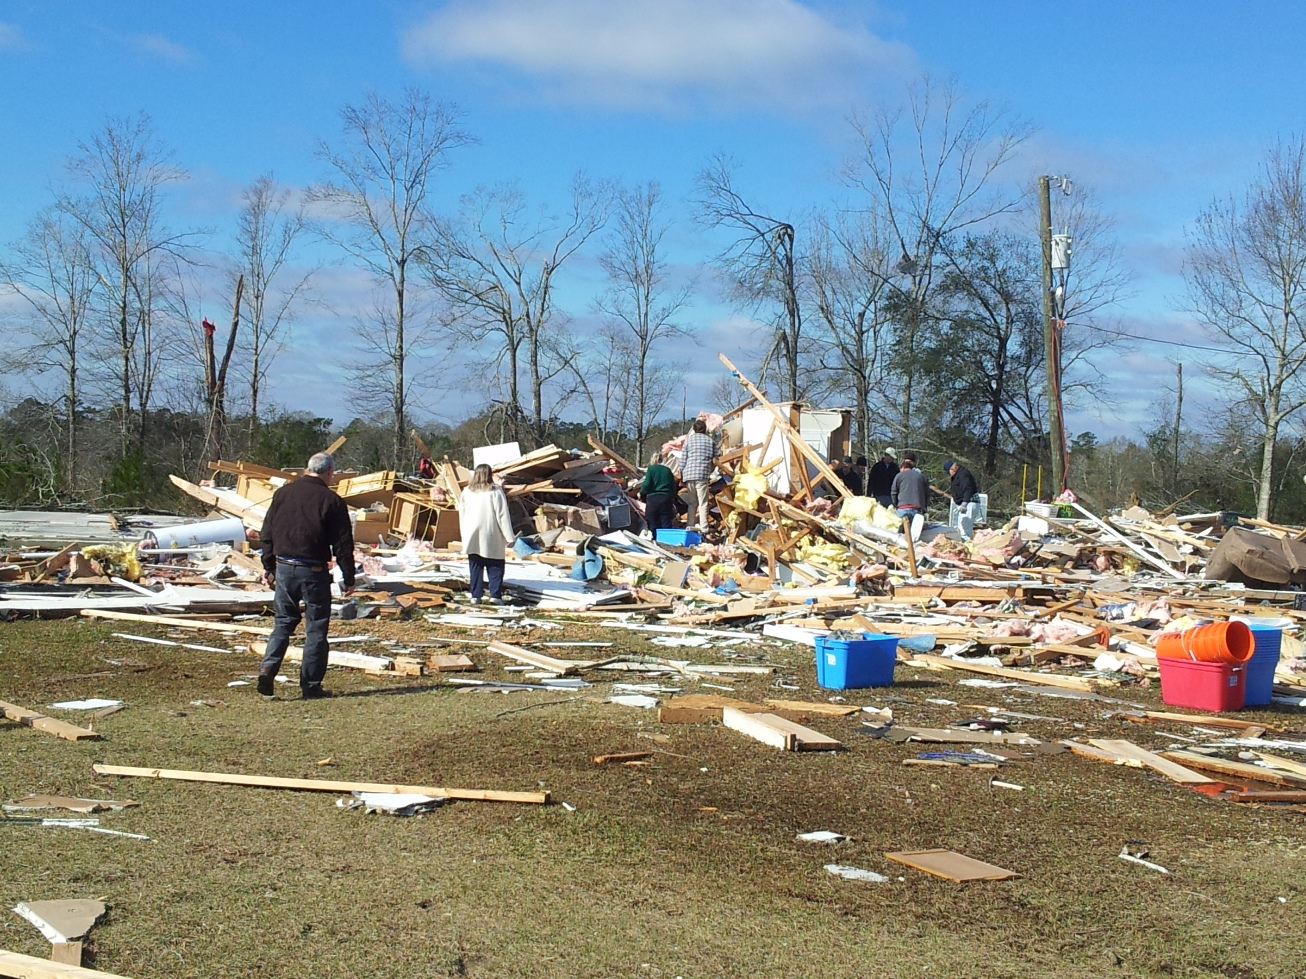 McNeill to McLain, MS EF3 Tornado – December 25, 2012